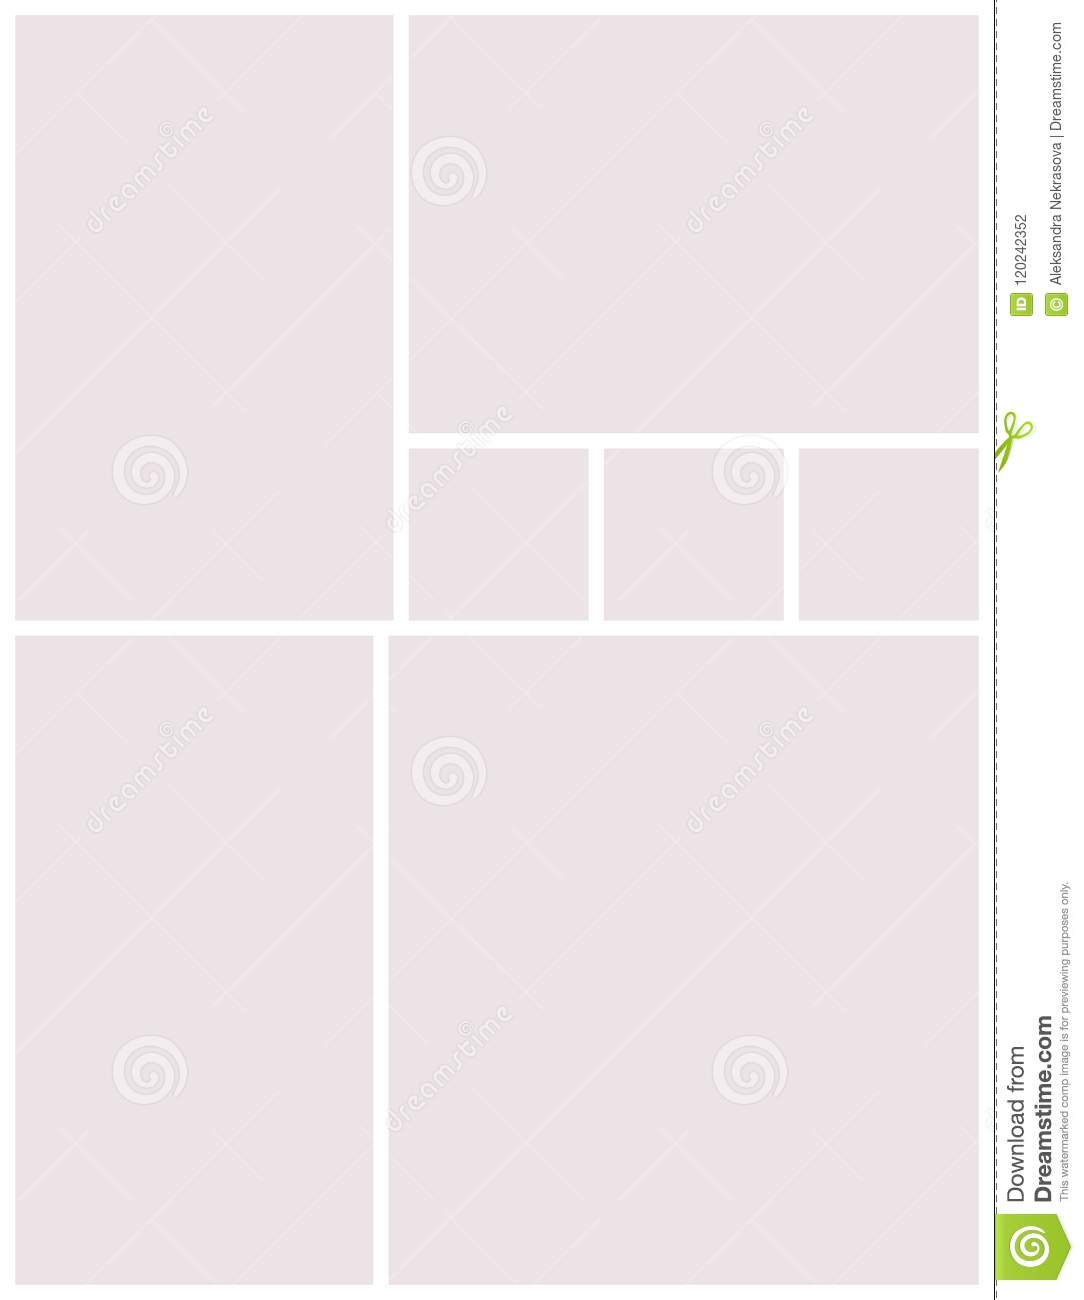 templates collage frames for photo or illustration stock vector